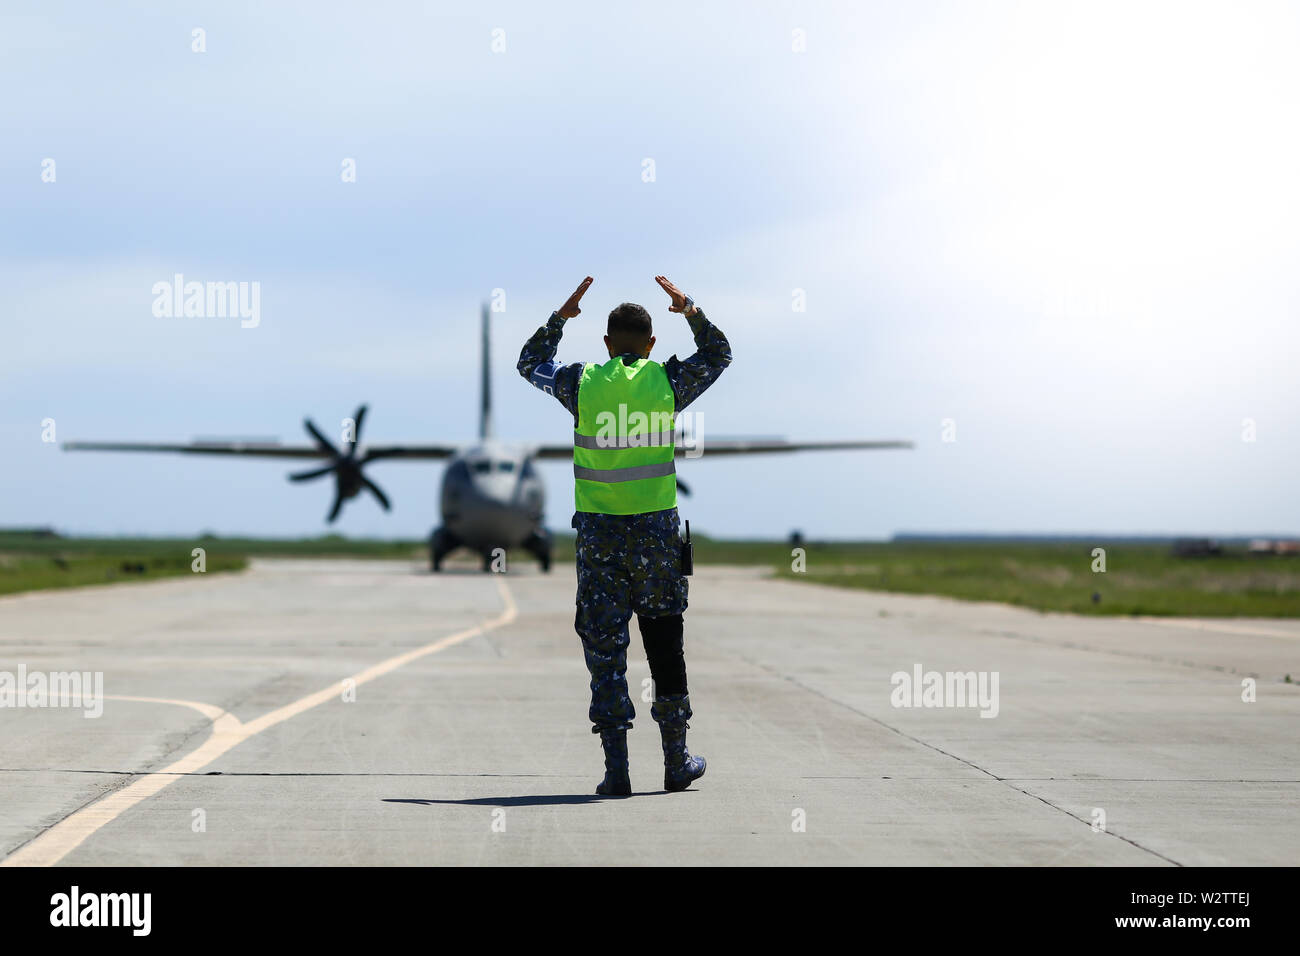 Boboc, Romania - May 22, 2019: Ground personnel is aircraft marshalling an Alenia C-27J Spartan military cargo plane from the Bulgarian Air Force that Stock Photo